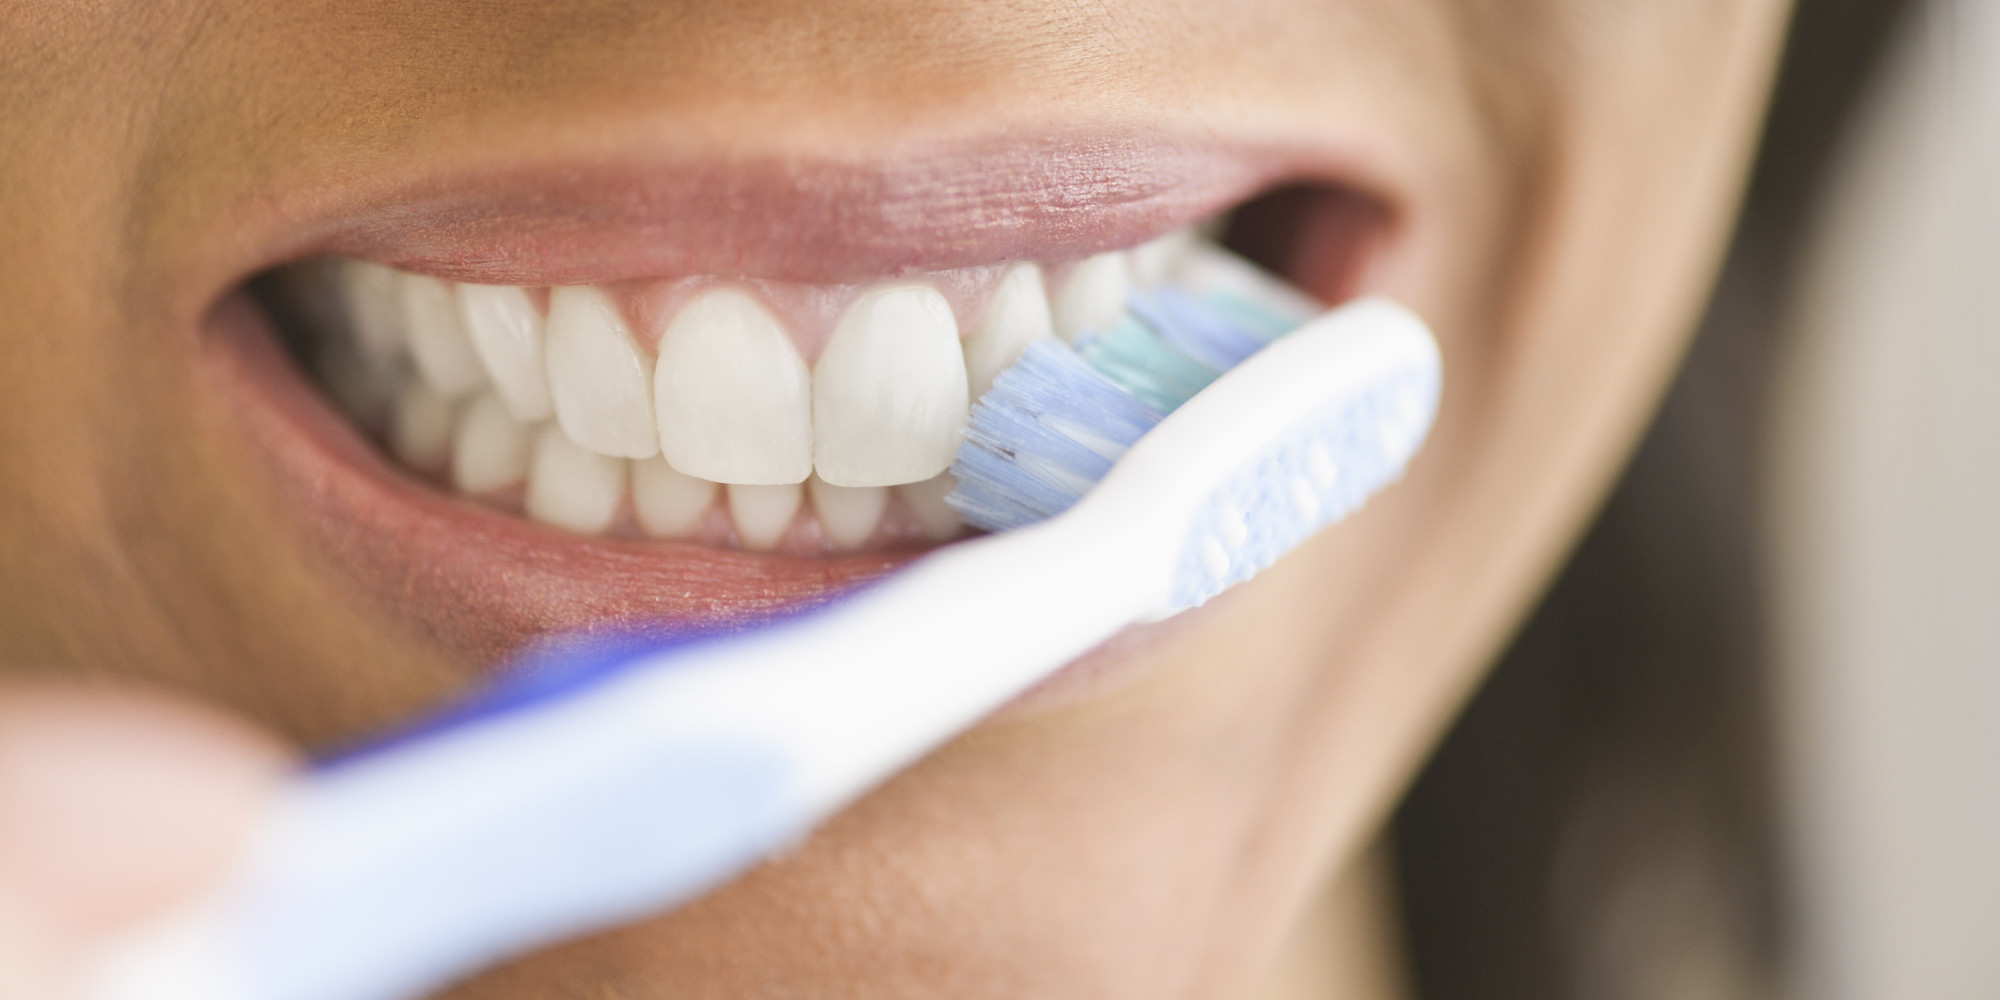 Sound of Bristles Impacts Tooth Brushing Satisfaction